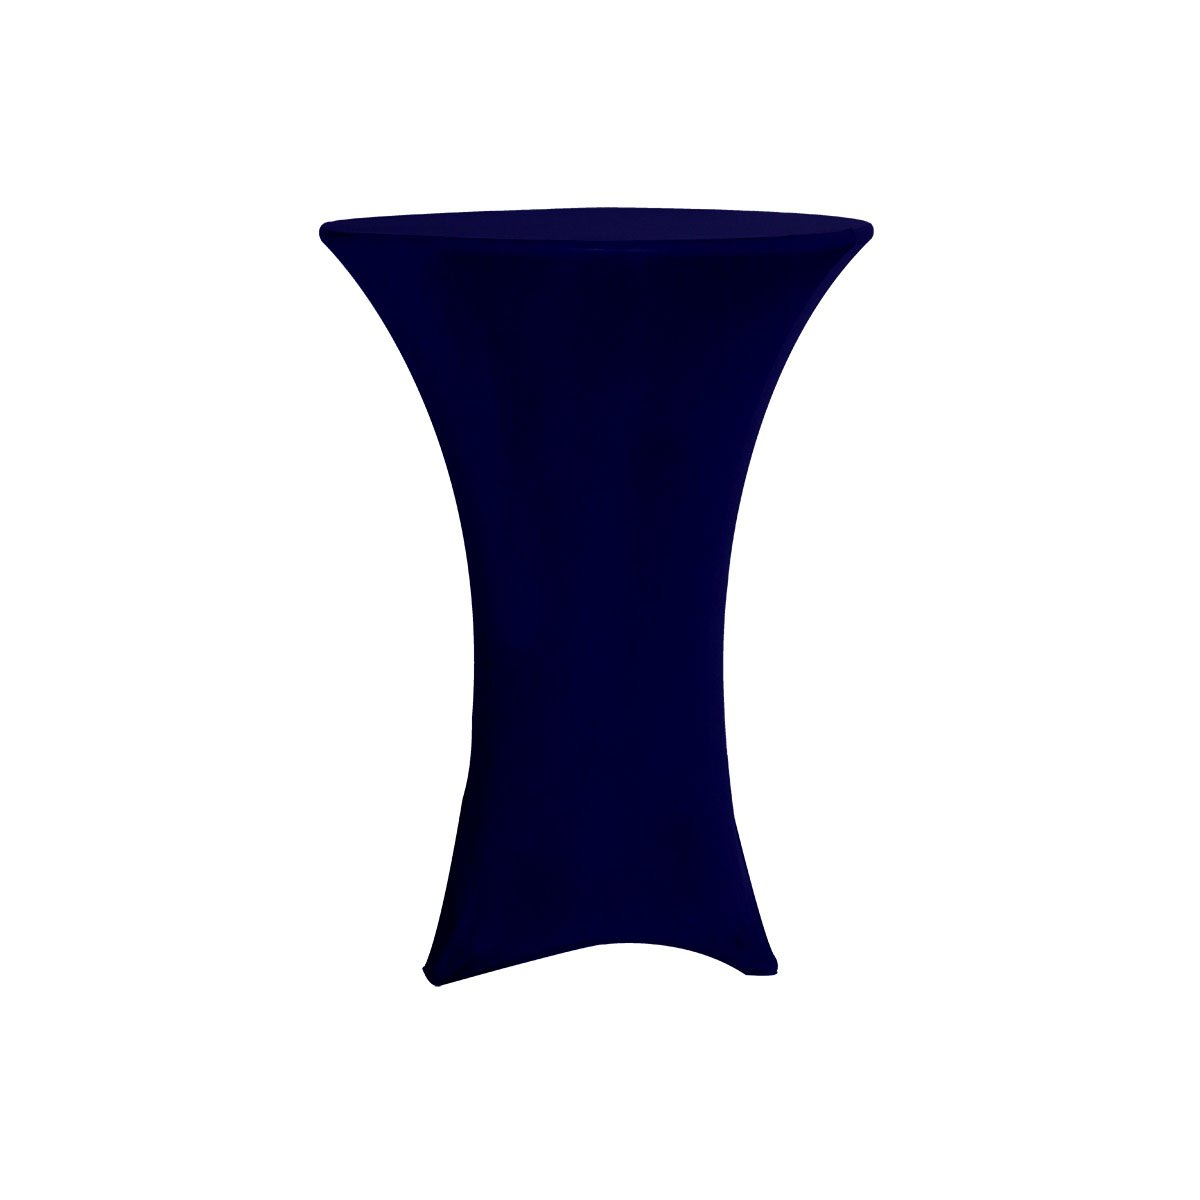 Your Chair Covers Highboy Cocktail Round Fitted Stretch Spandex Table Cover, Fitted Tablecloth for 30'' Diameter x 42'' Height Round Tables -Navy Blue